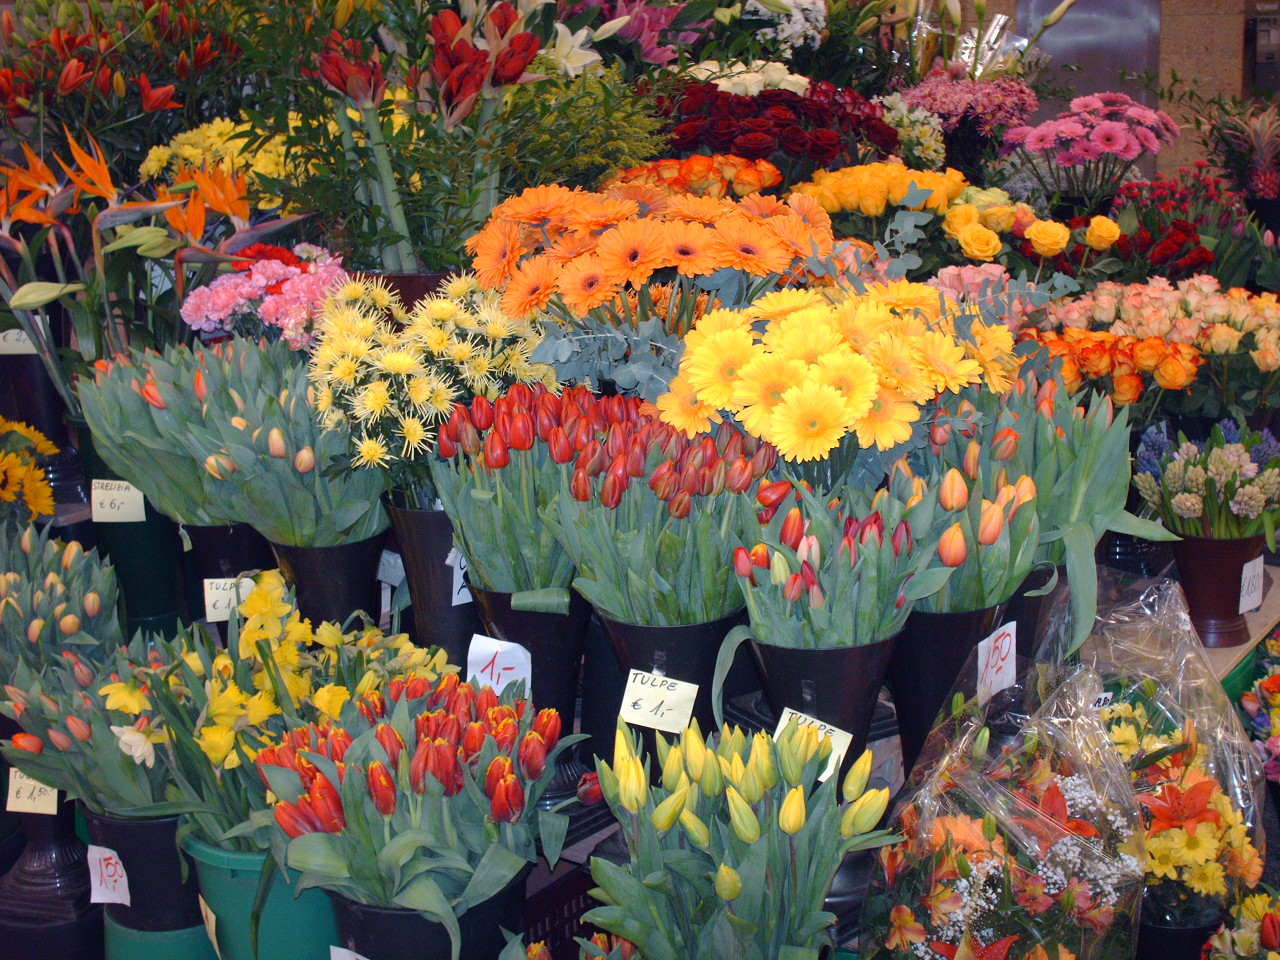 Things to remember when visiting your florist